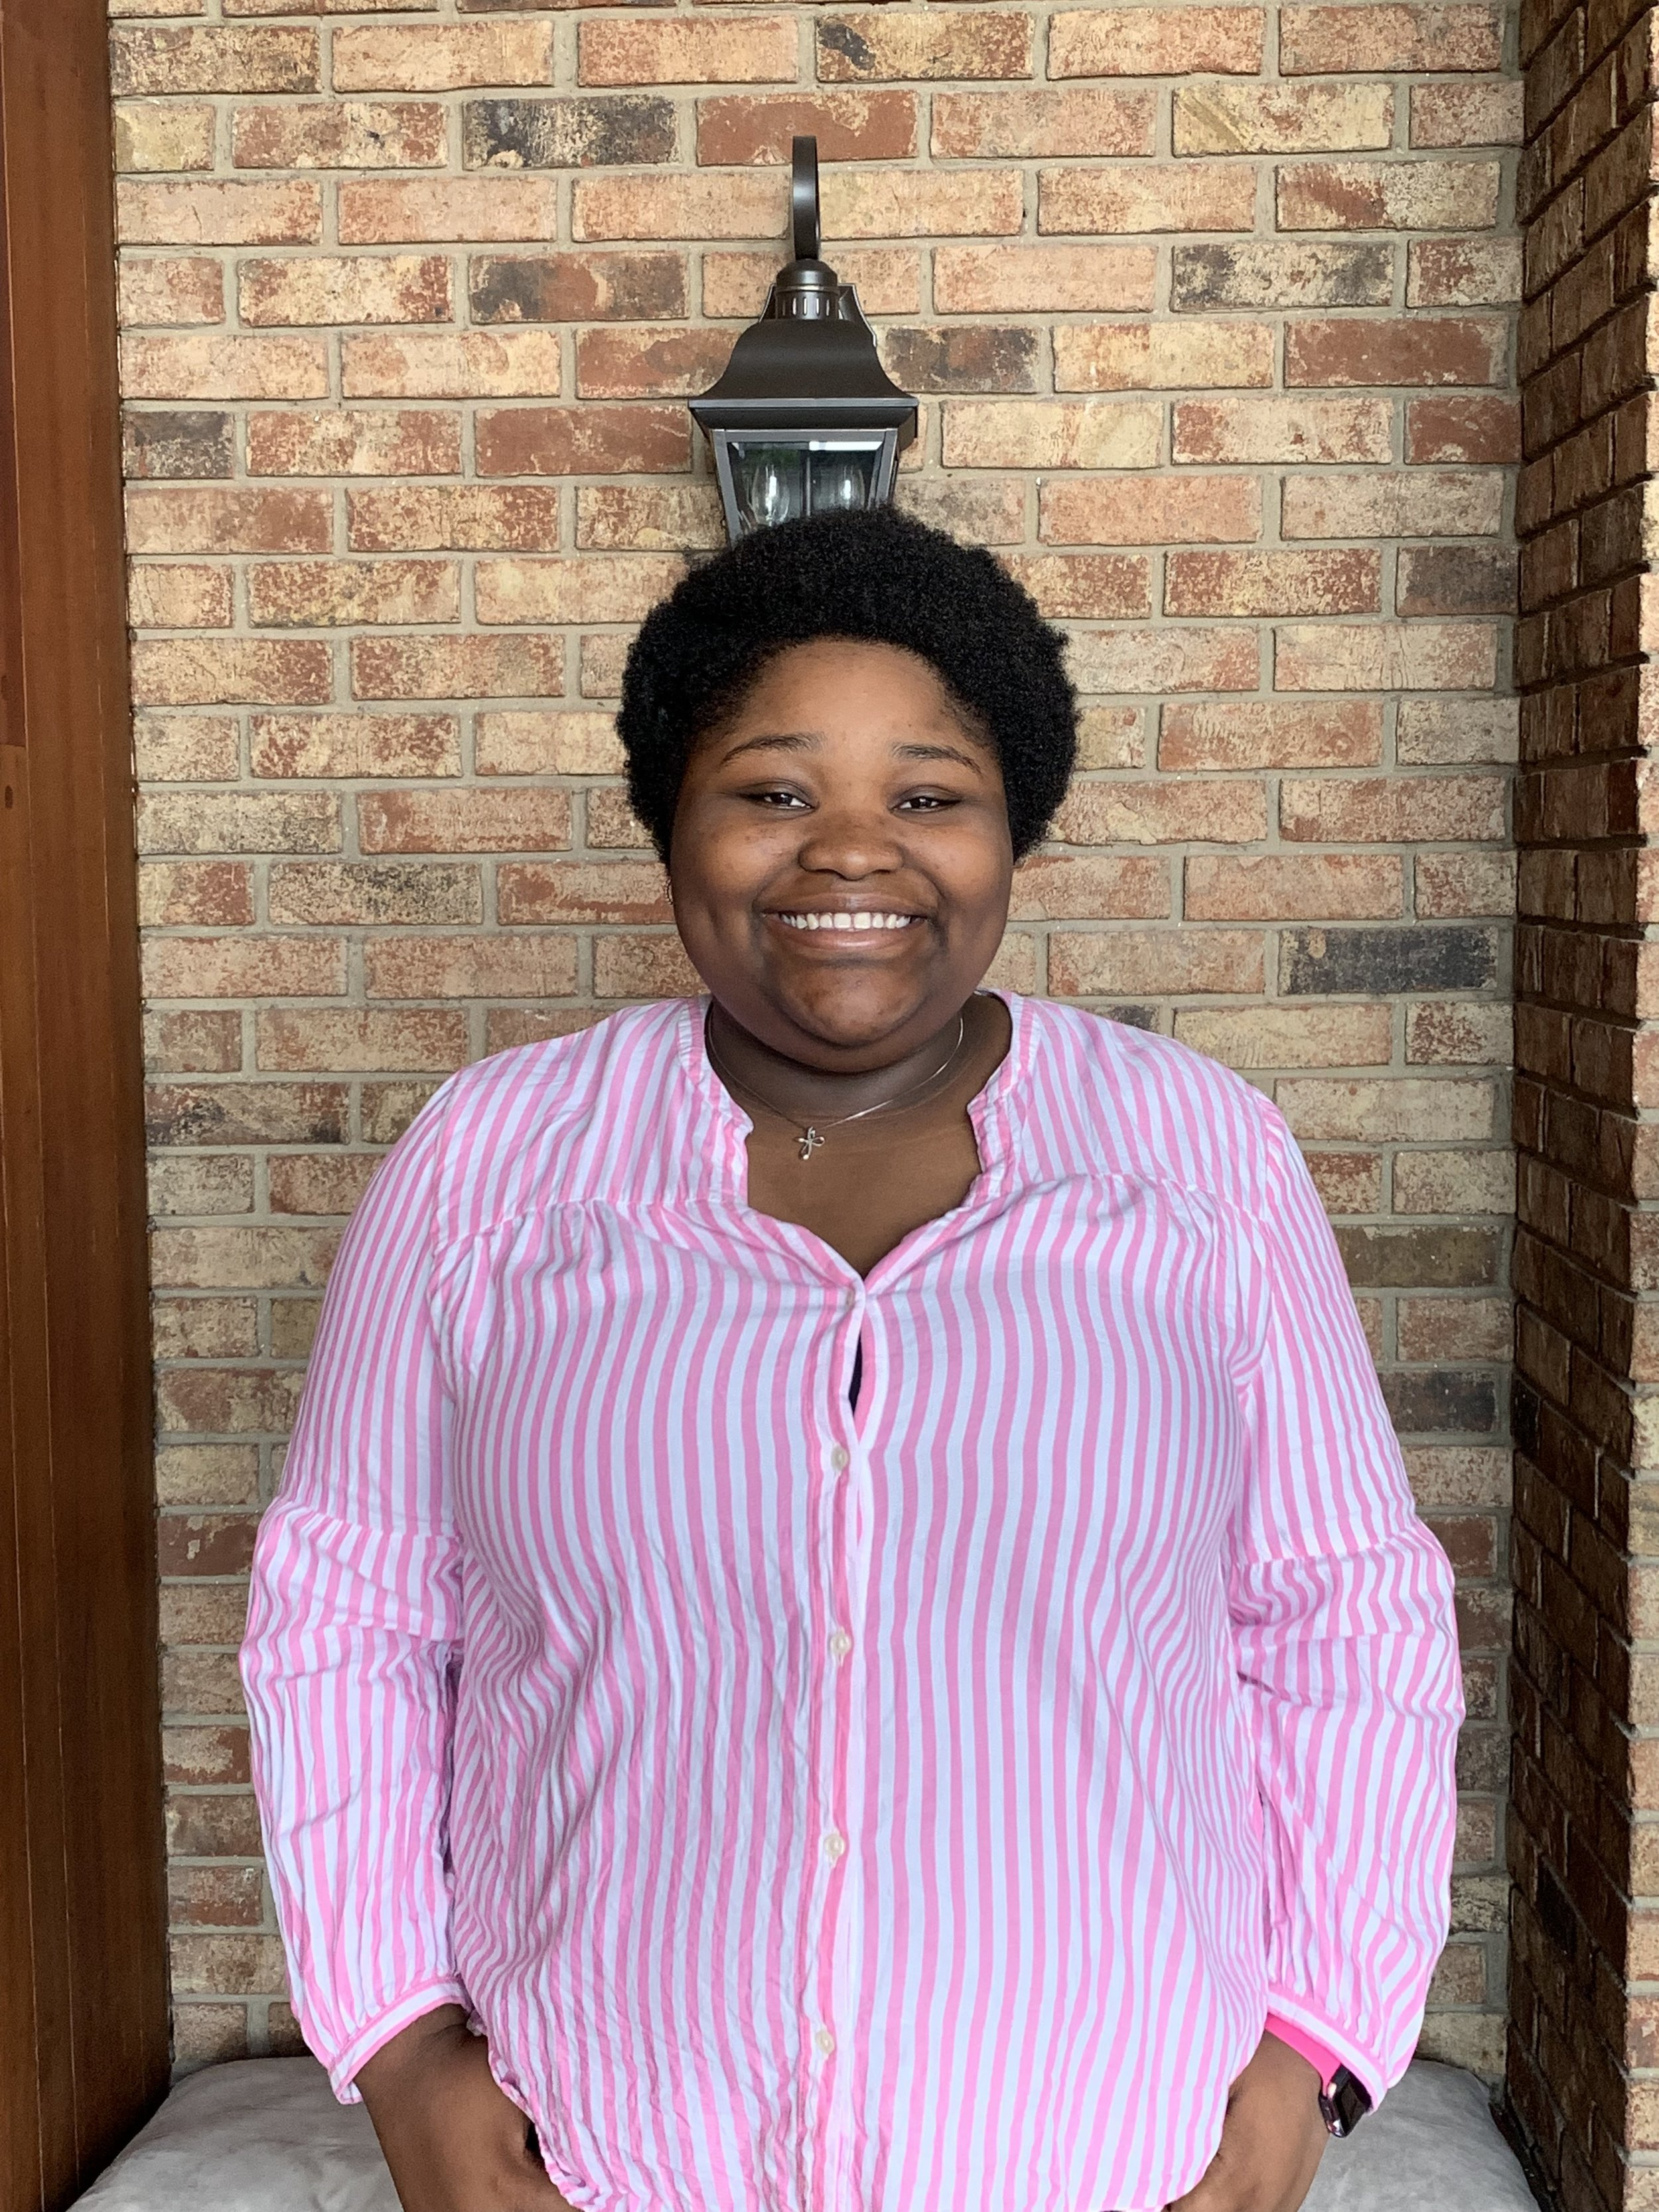 JeTori Howard - Jetori is a rising senior at Fulton High and a kind individual who describes herself as being a flower that is constantly blooming. She has an impressive sleep endurance even through the loudest situation, however, she also impressively awake and attentive to the people she cares deeply about. God, her family and friends are the many people that she holds very close to her heart. Jetori gets her energy from being around people that she cares about, however, she also re-energizes during her alone time depending on the situation. She is a young woman that is filled with love, hope, and faith. These are some of things, among many, that make up this blossoming flower.